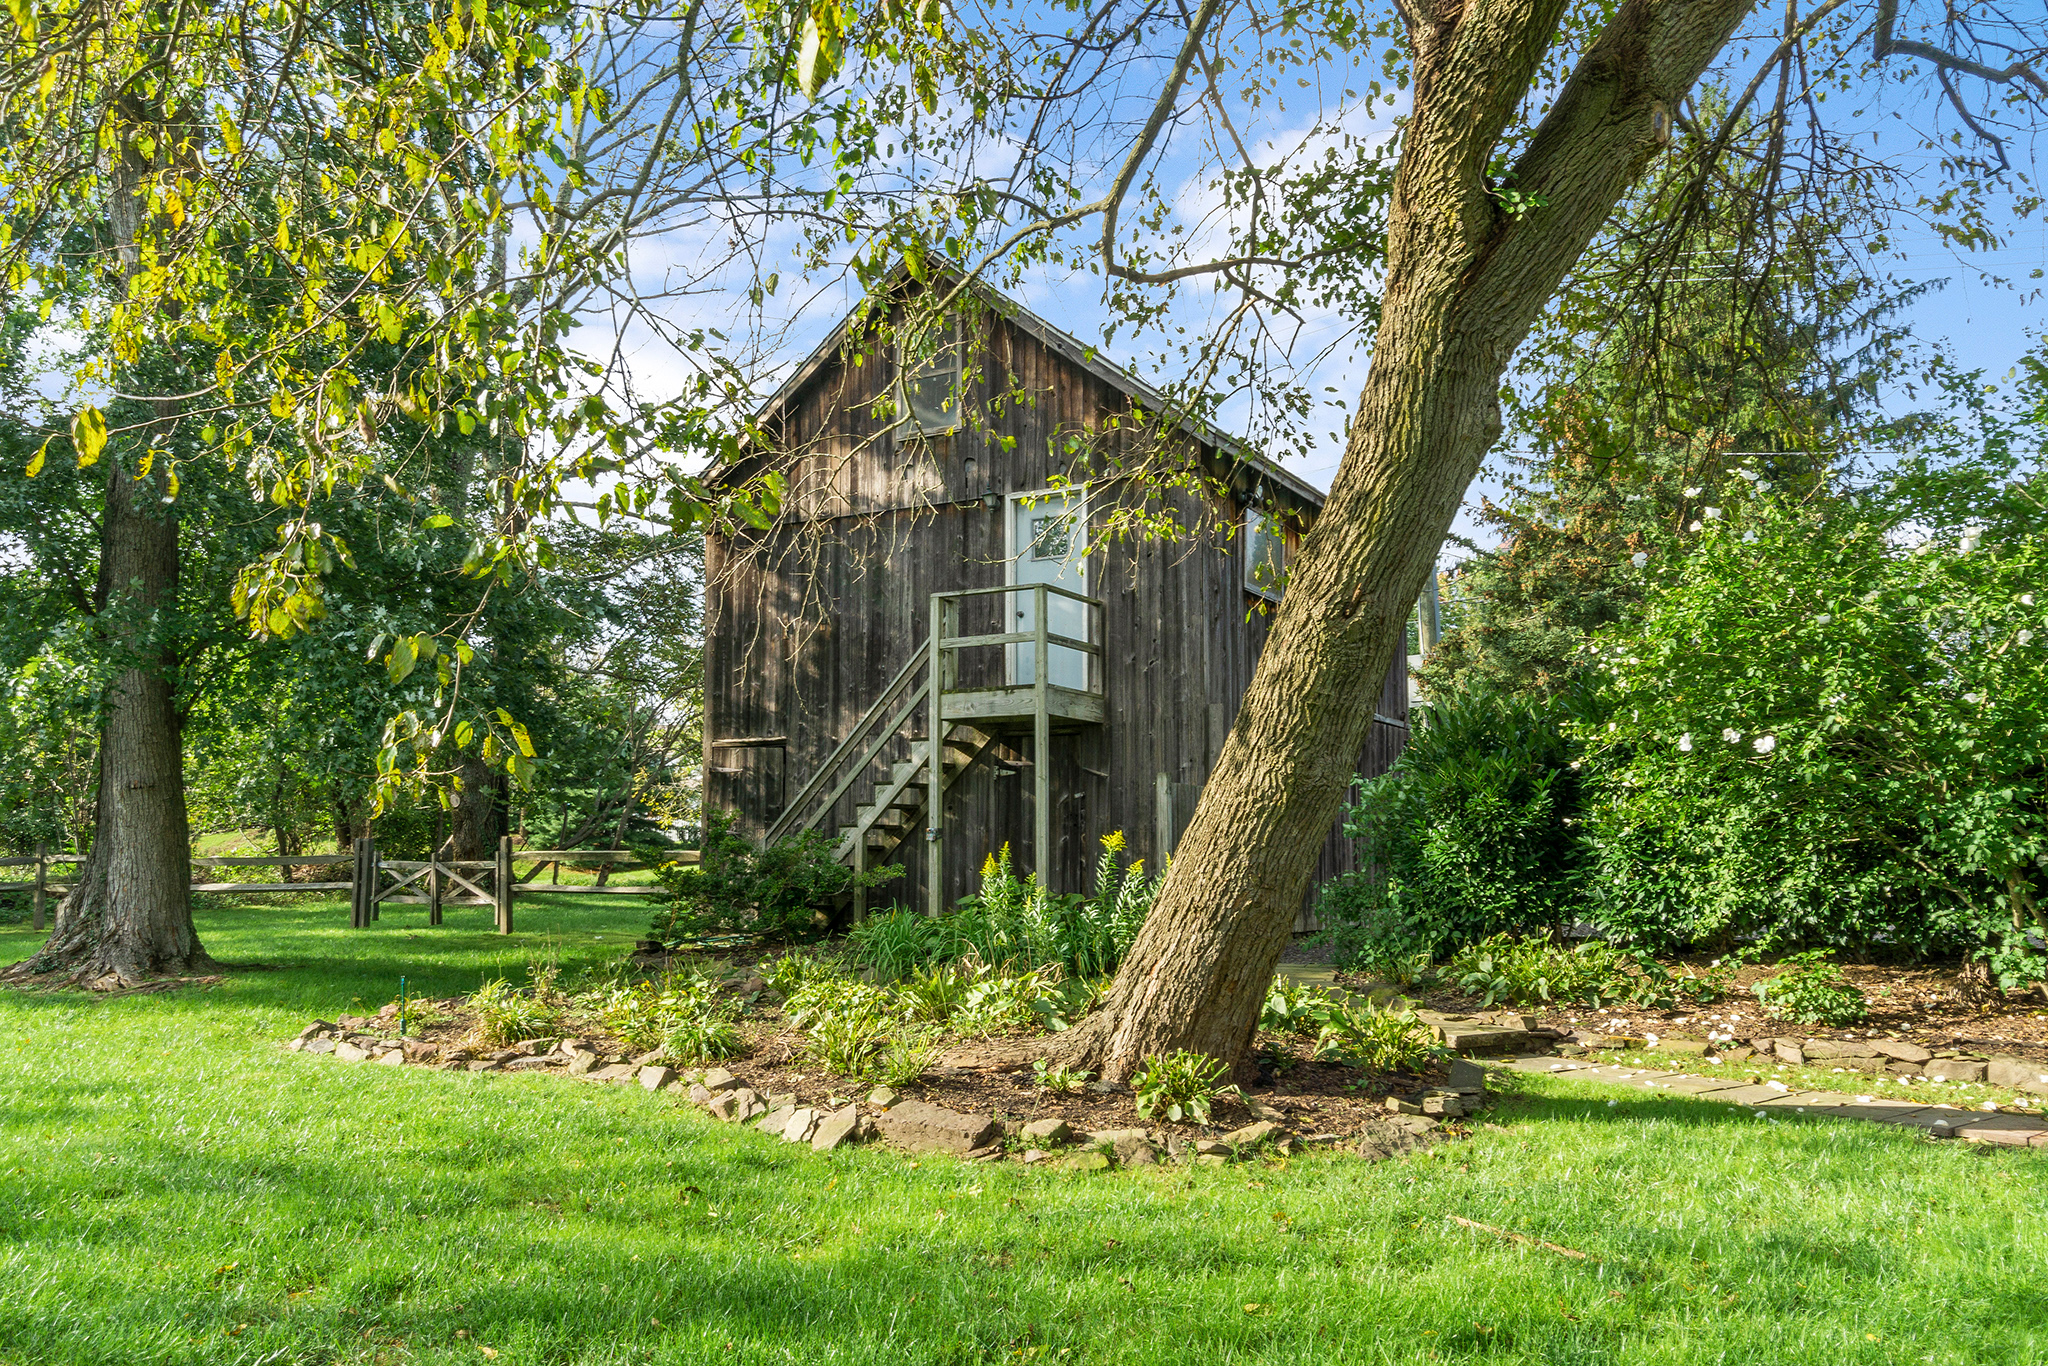 Historic Homes Newtown PA | Antique Barns Bucks County